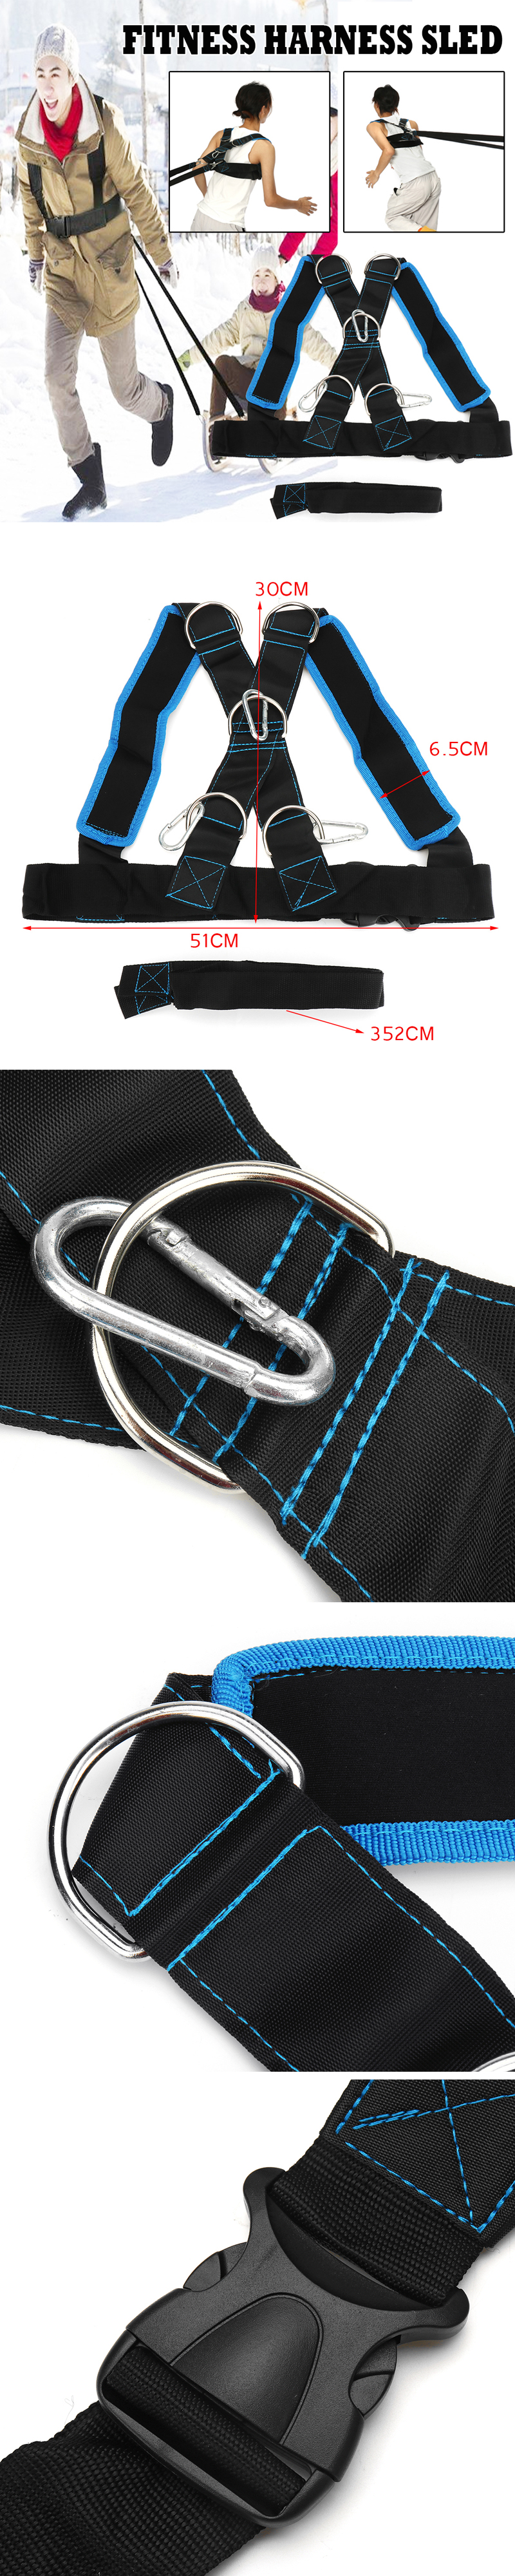 Outdoor Sports Fitness Sled Harness Strength Speed Training Strap Workout Pull Resistance Bands Belt